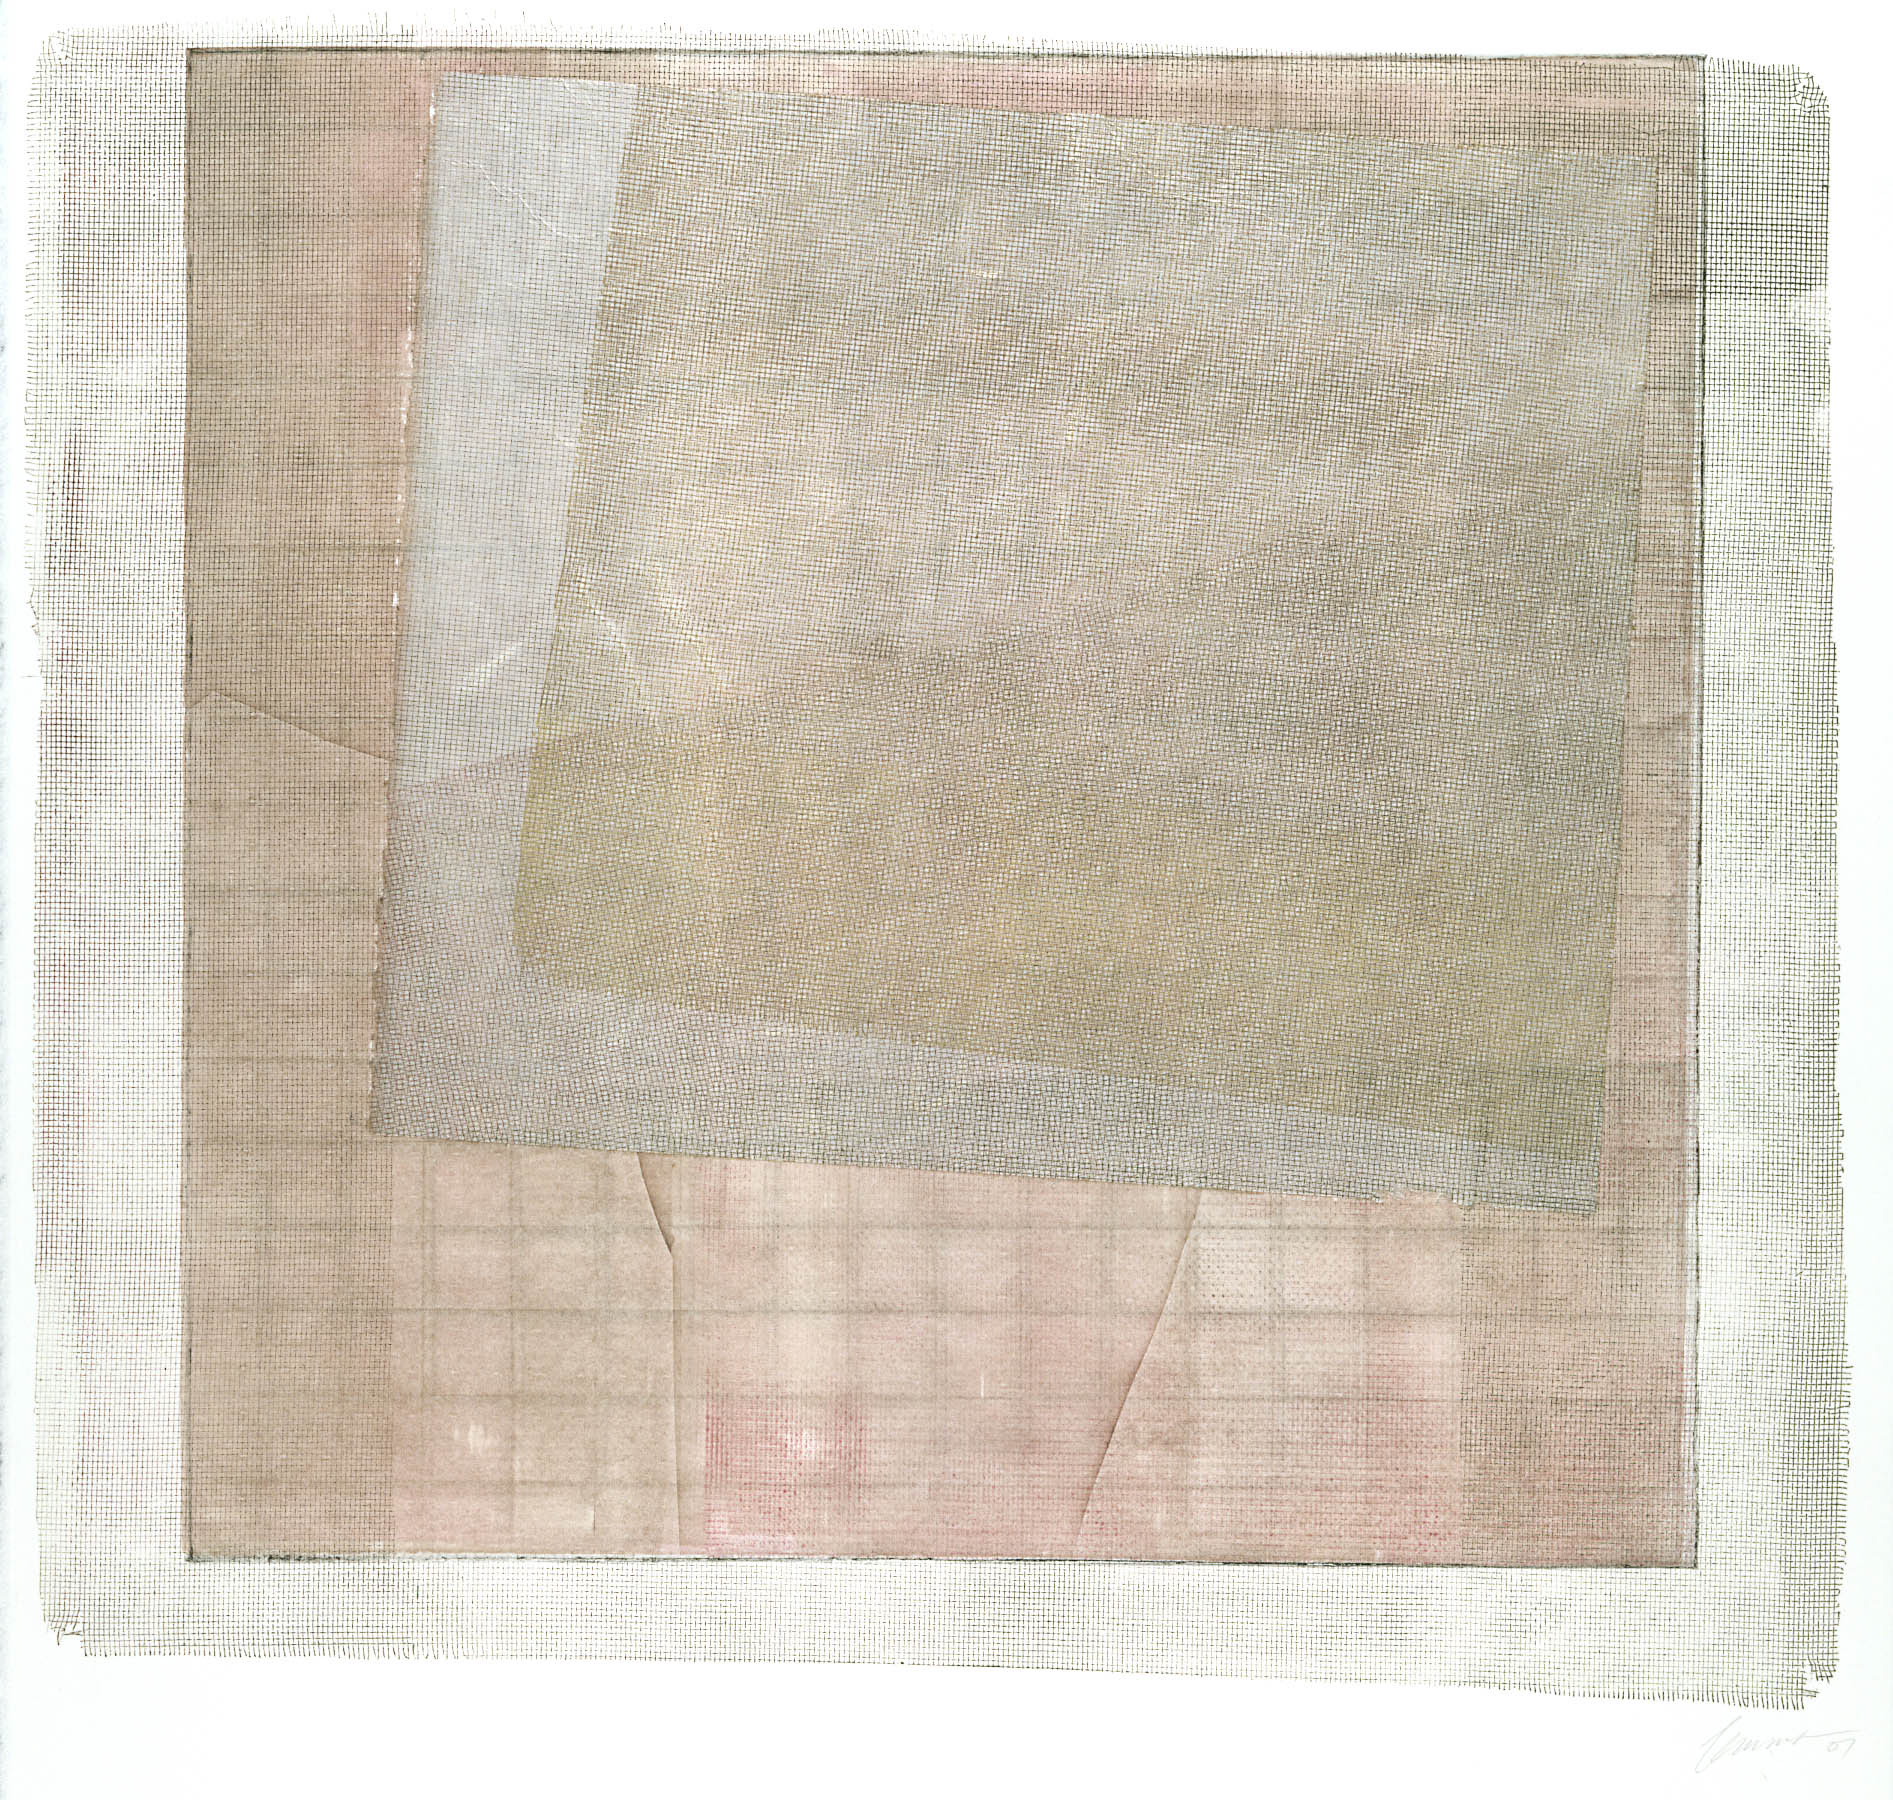 Screened Grid #1-Mastin White, 22x30 monoprint $2070